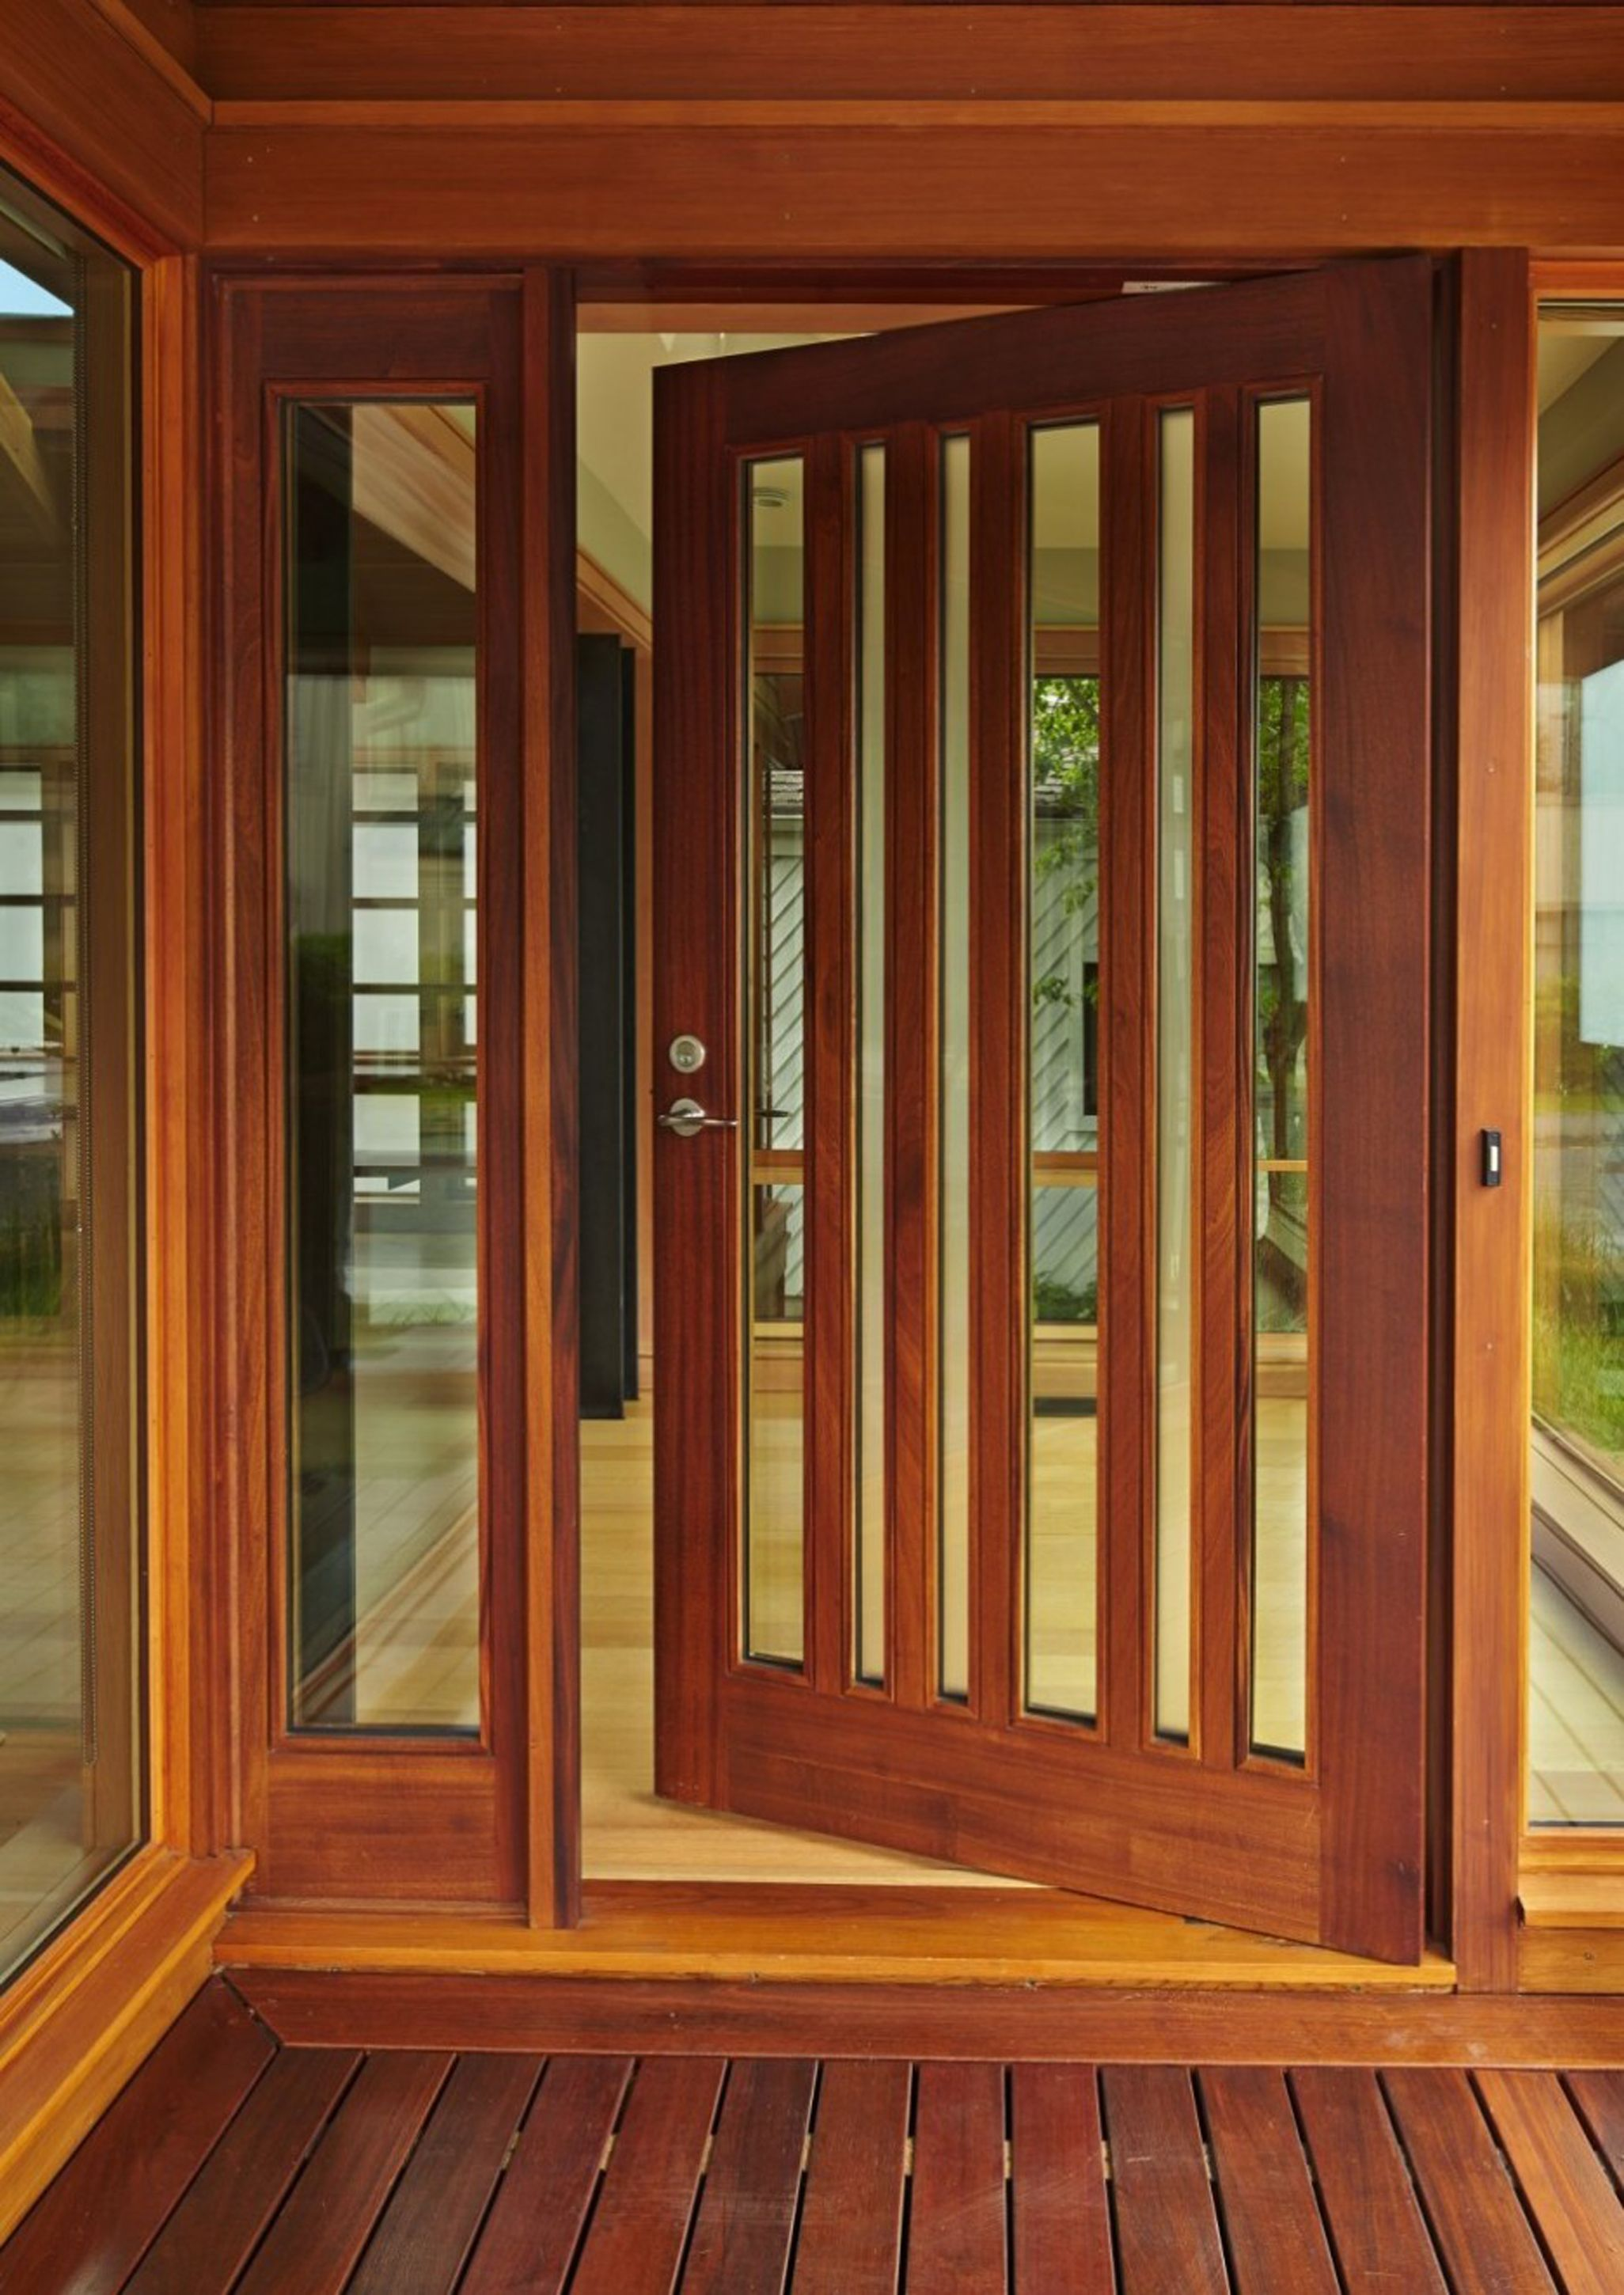 Glass pivot door home design ideas pictures remodel and decor - Elegant Entrance Doors Design Luxurious Wooden Entrance Door With Glass Windows On The Panels With Contemporary Design Combined With Traditional Touch For